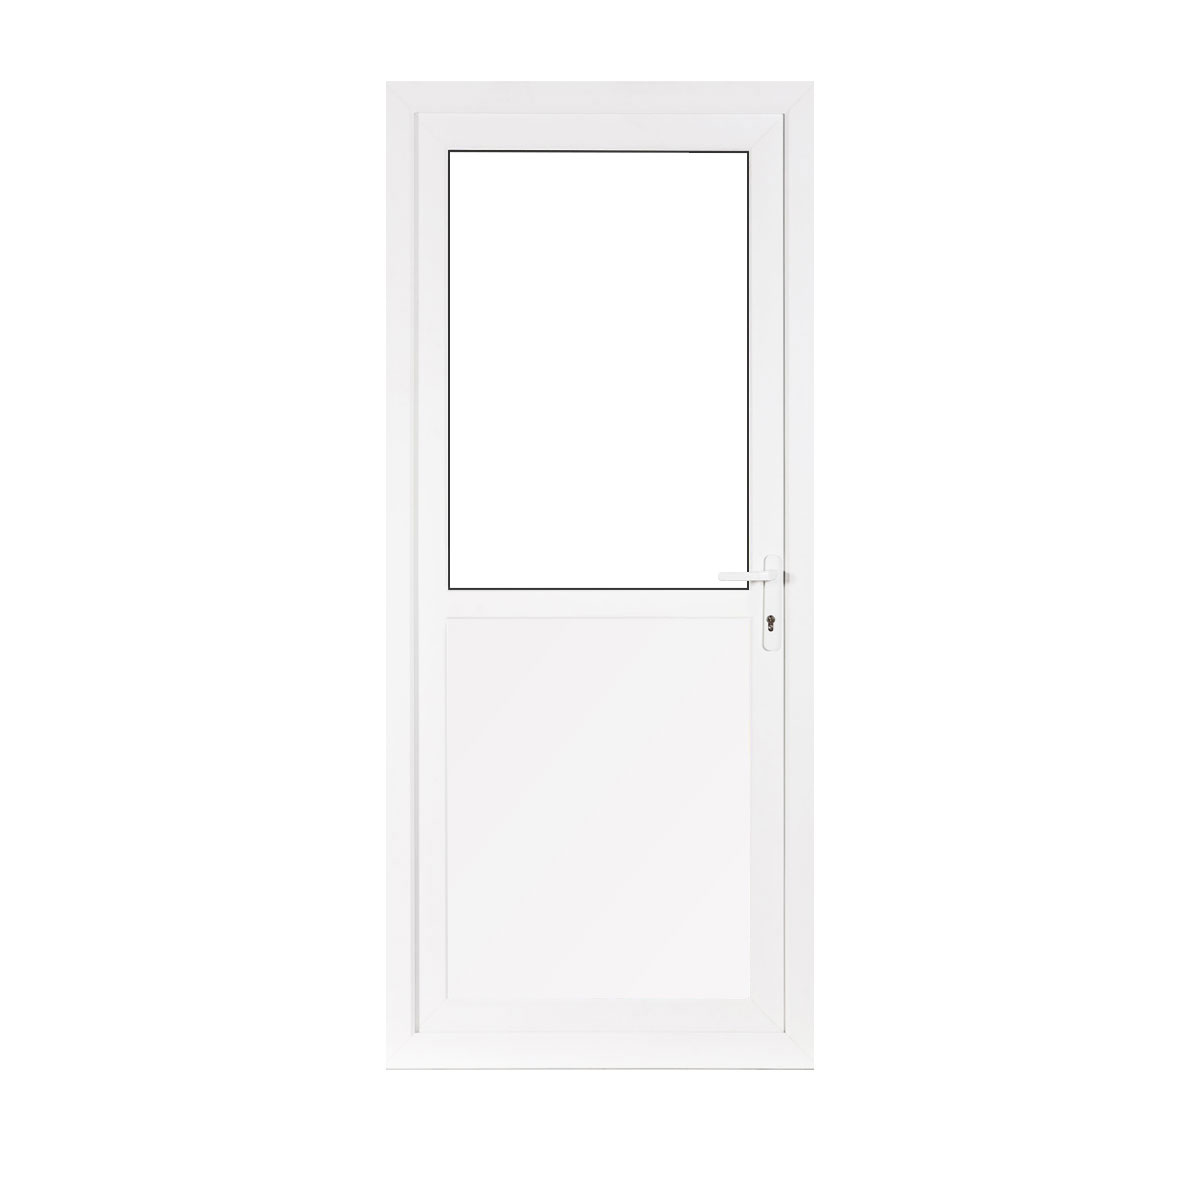 Half glass upvc back door flying doors for Exterior back doors with glass